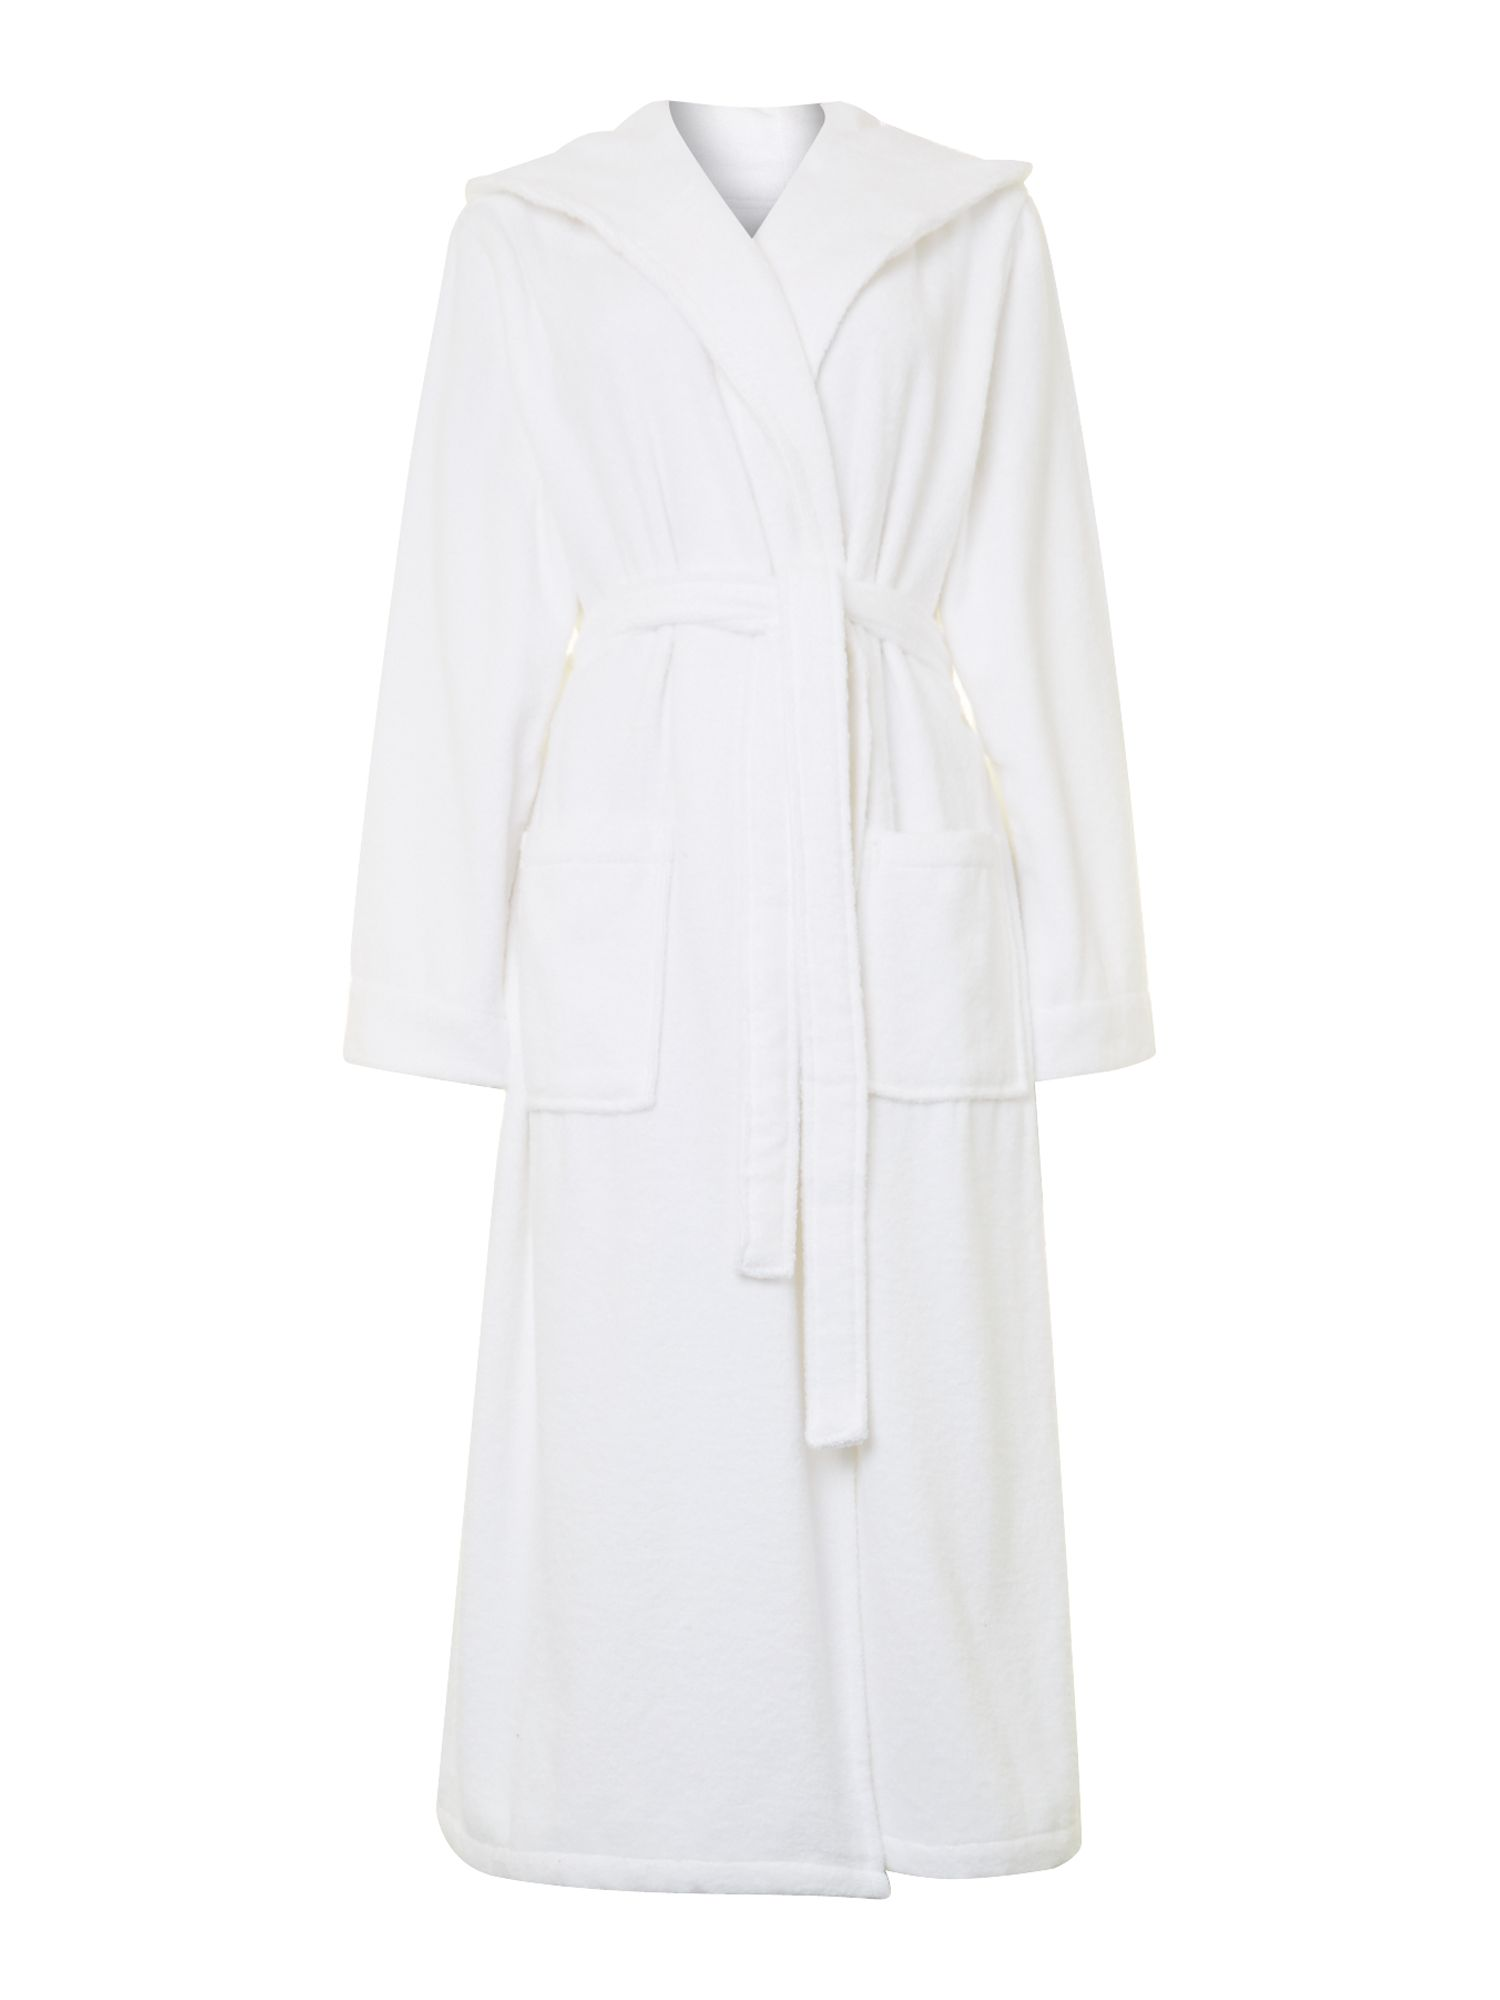 Luxury Hotel Collection Zero Twist Terry Robe In White - House of Fraser